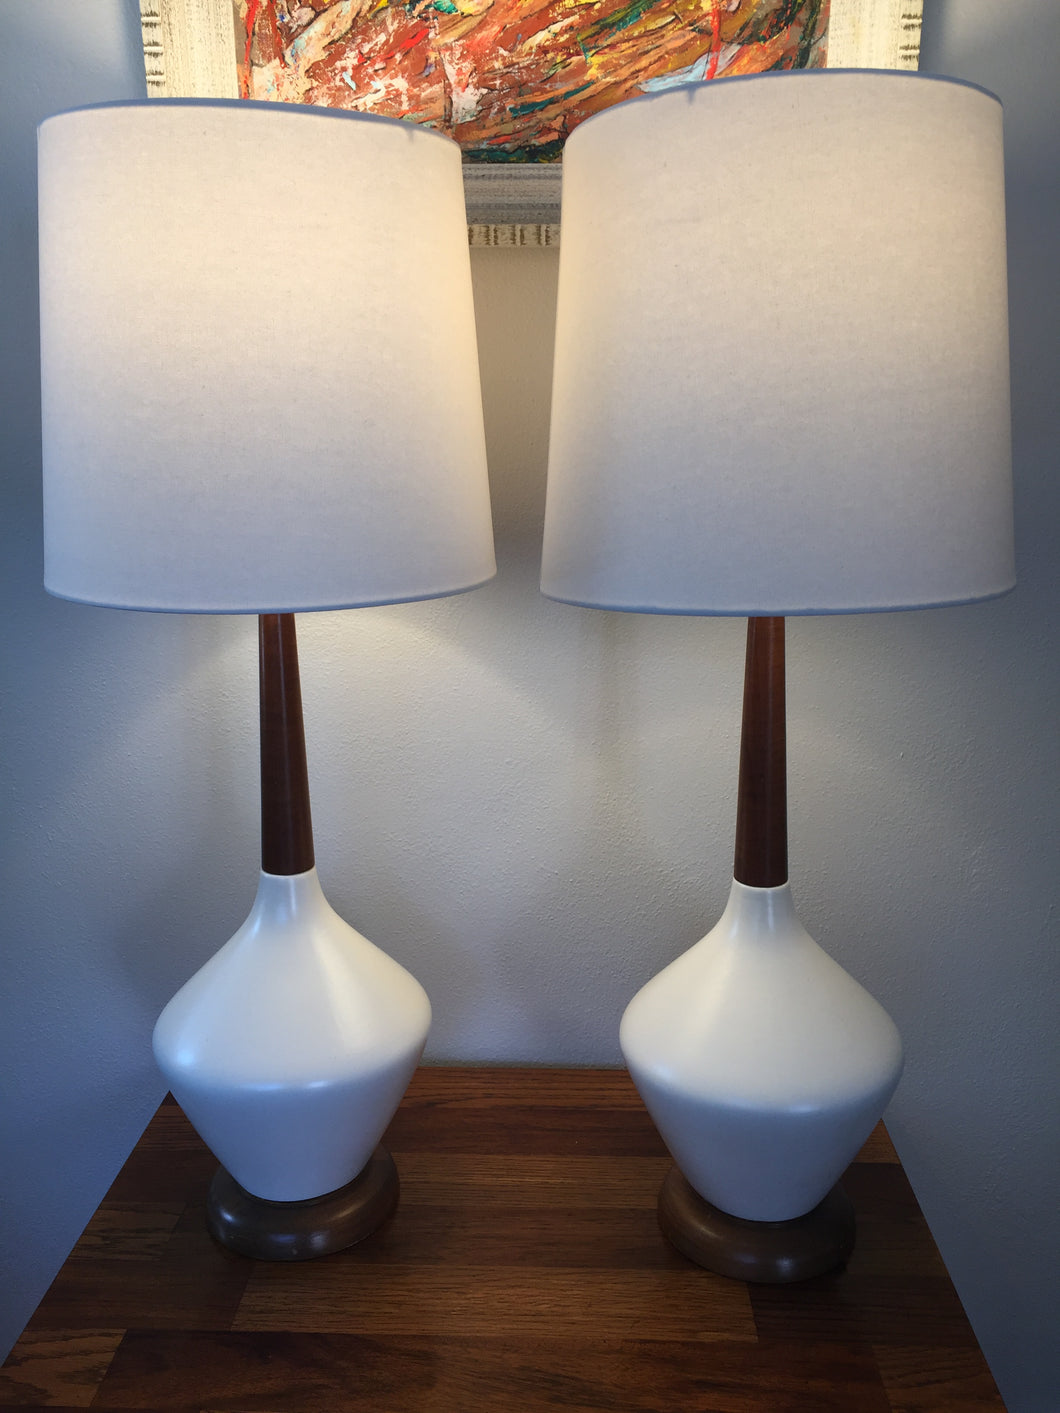 Vintage Mid Century Modern Ceramic & Walnut Lamps In White With New Linen Shades